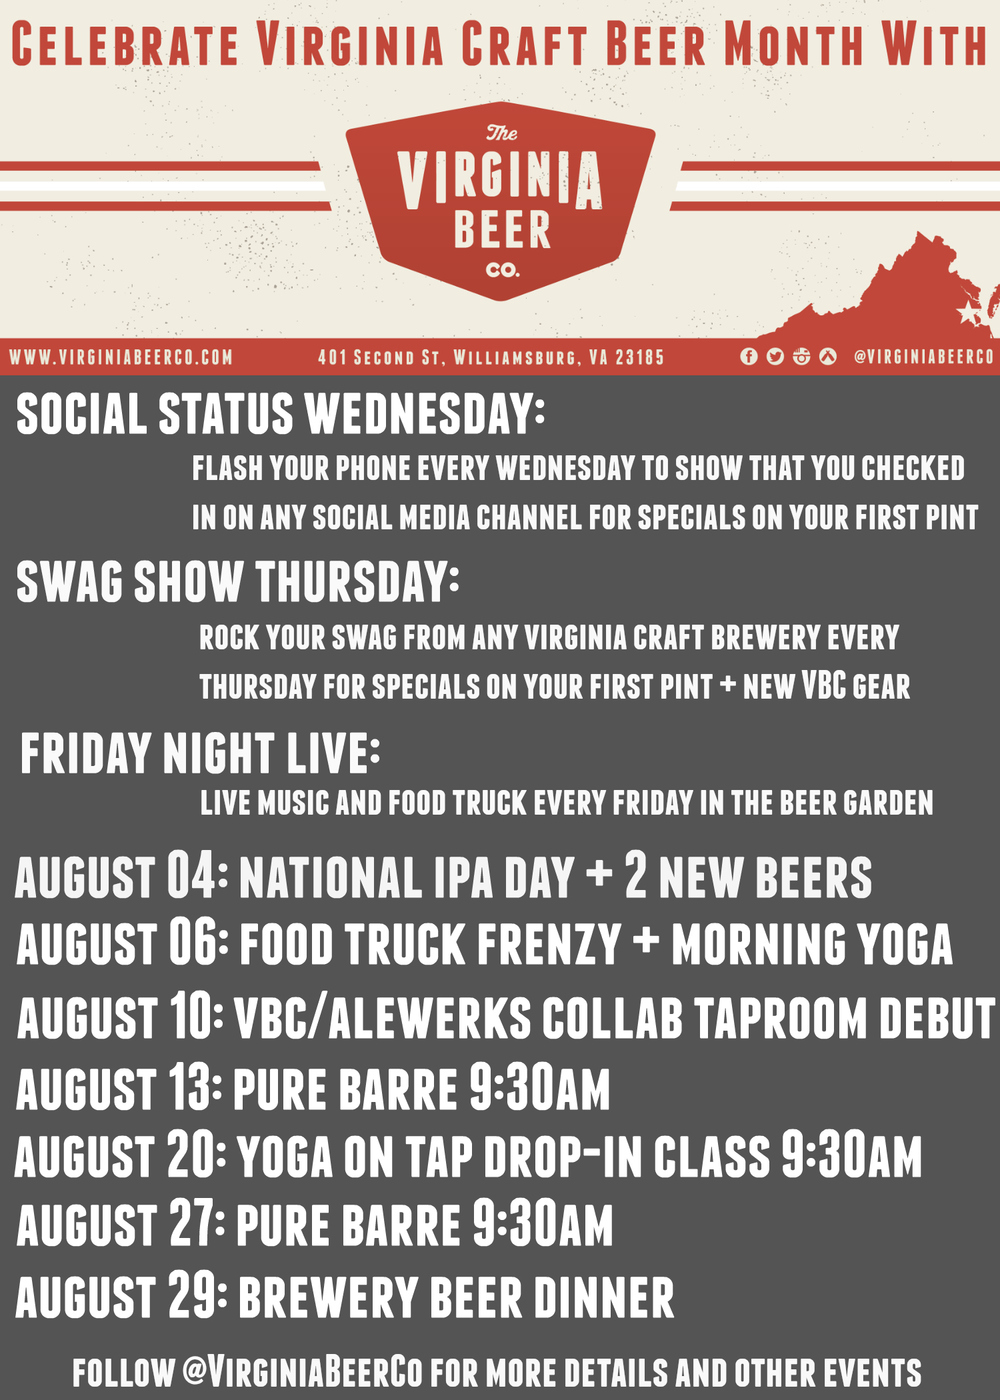 VBC VA craft beer month 5x7 postcard side 1.jpg